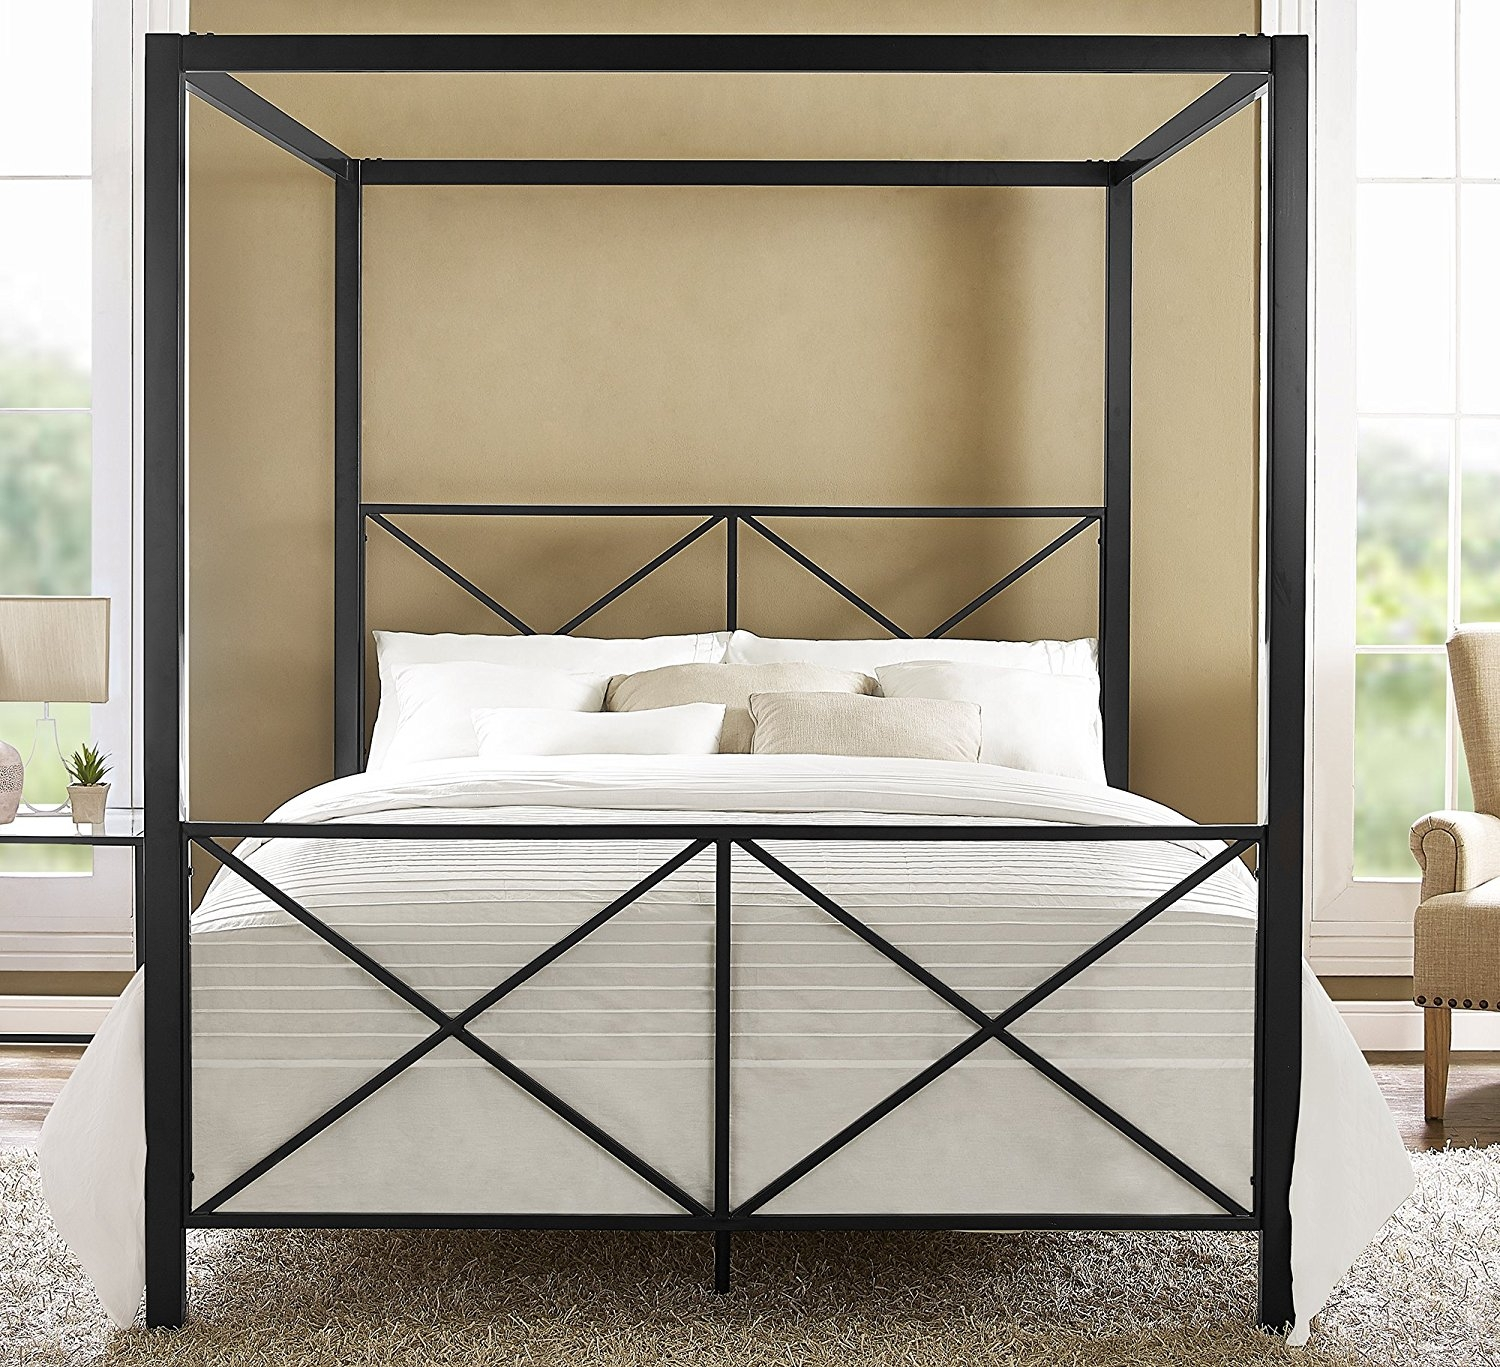 New Great Quality Rosedale Metal Canopy Bed, Queen Size -...